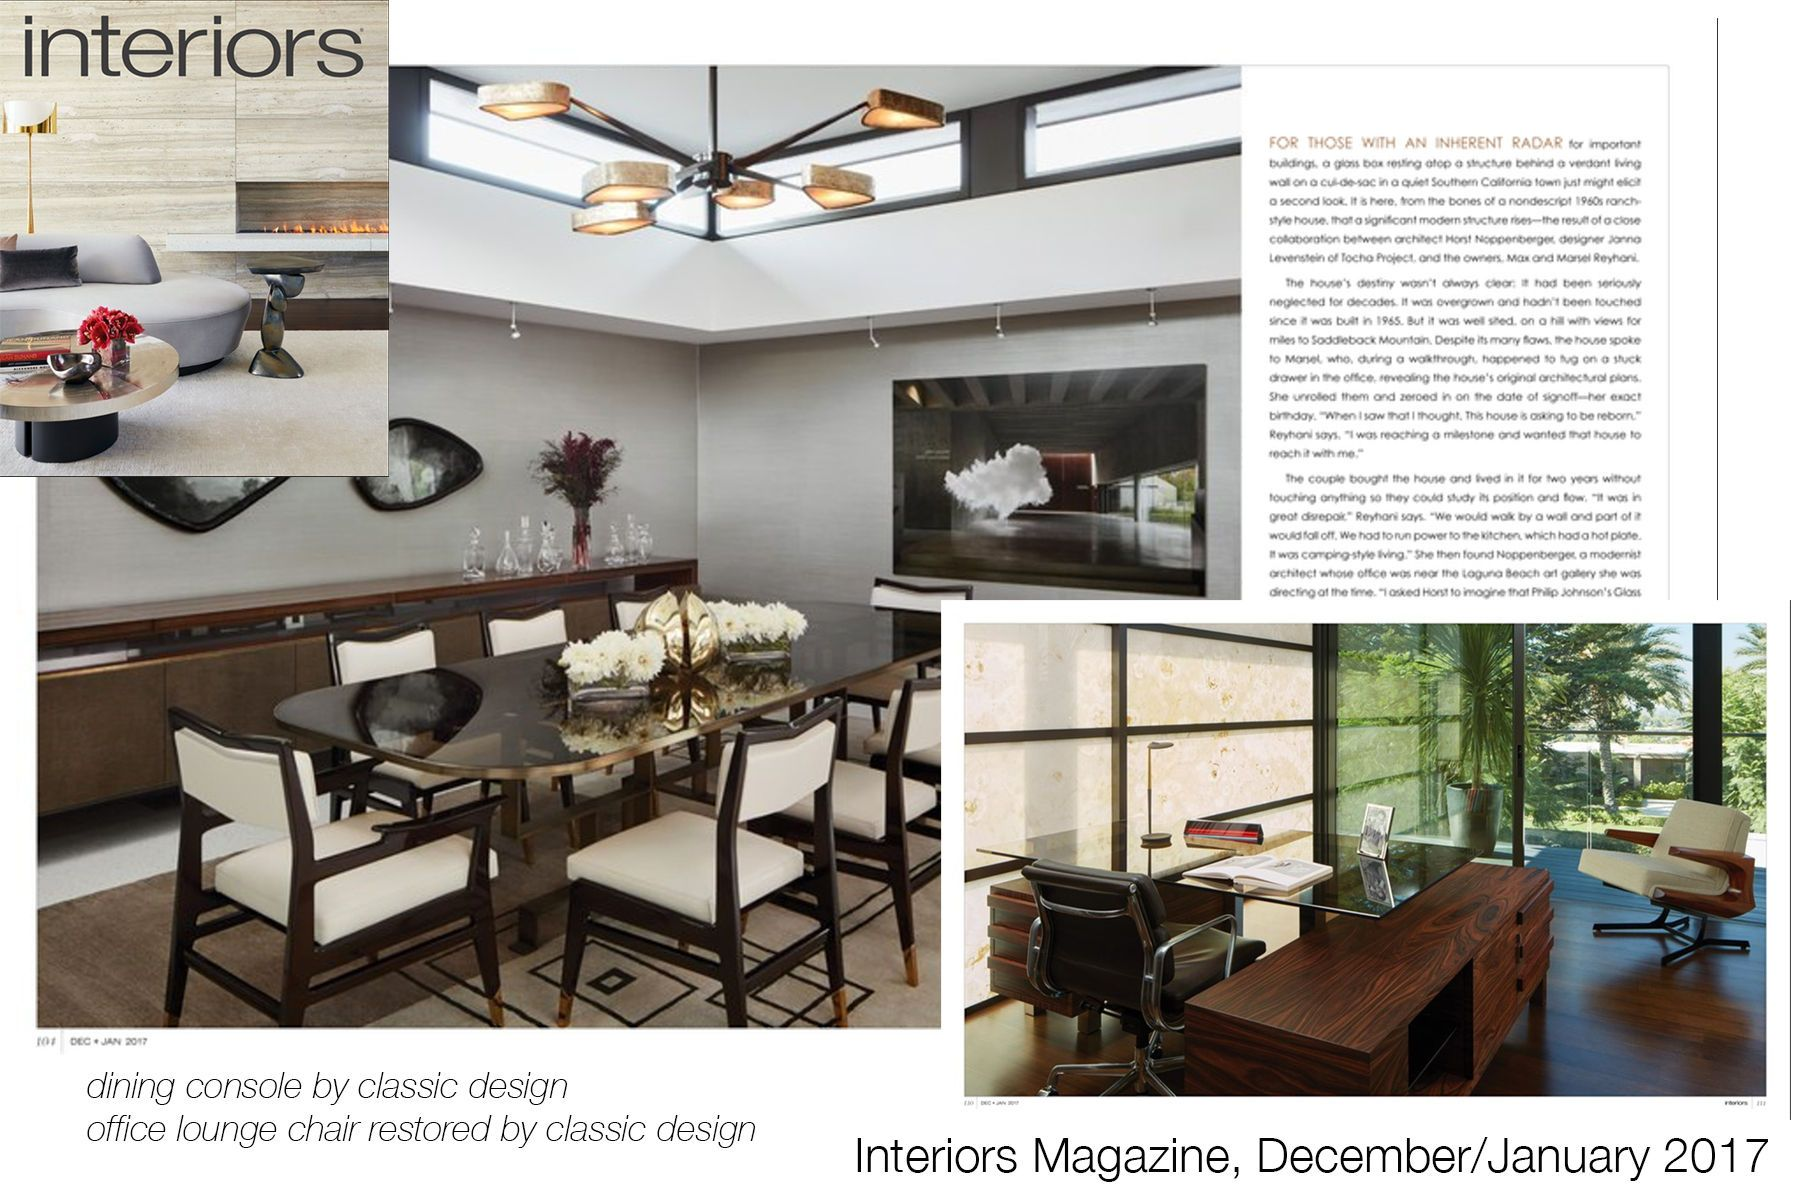 Interiors Magazine - December/January 2017